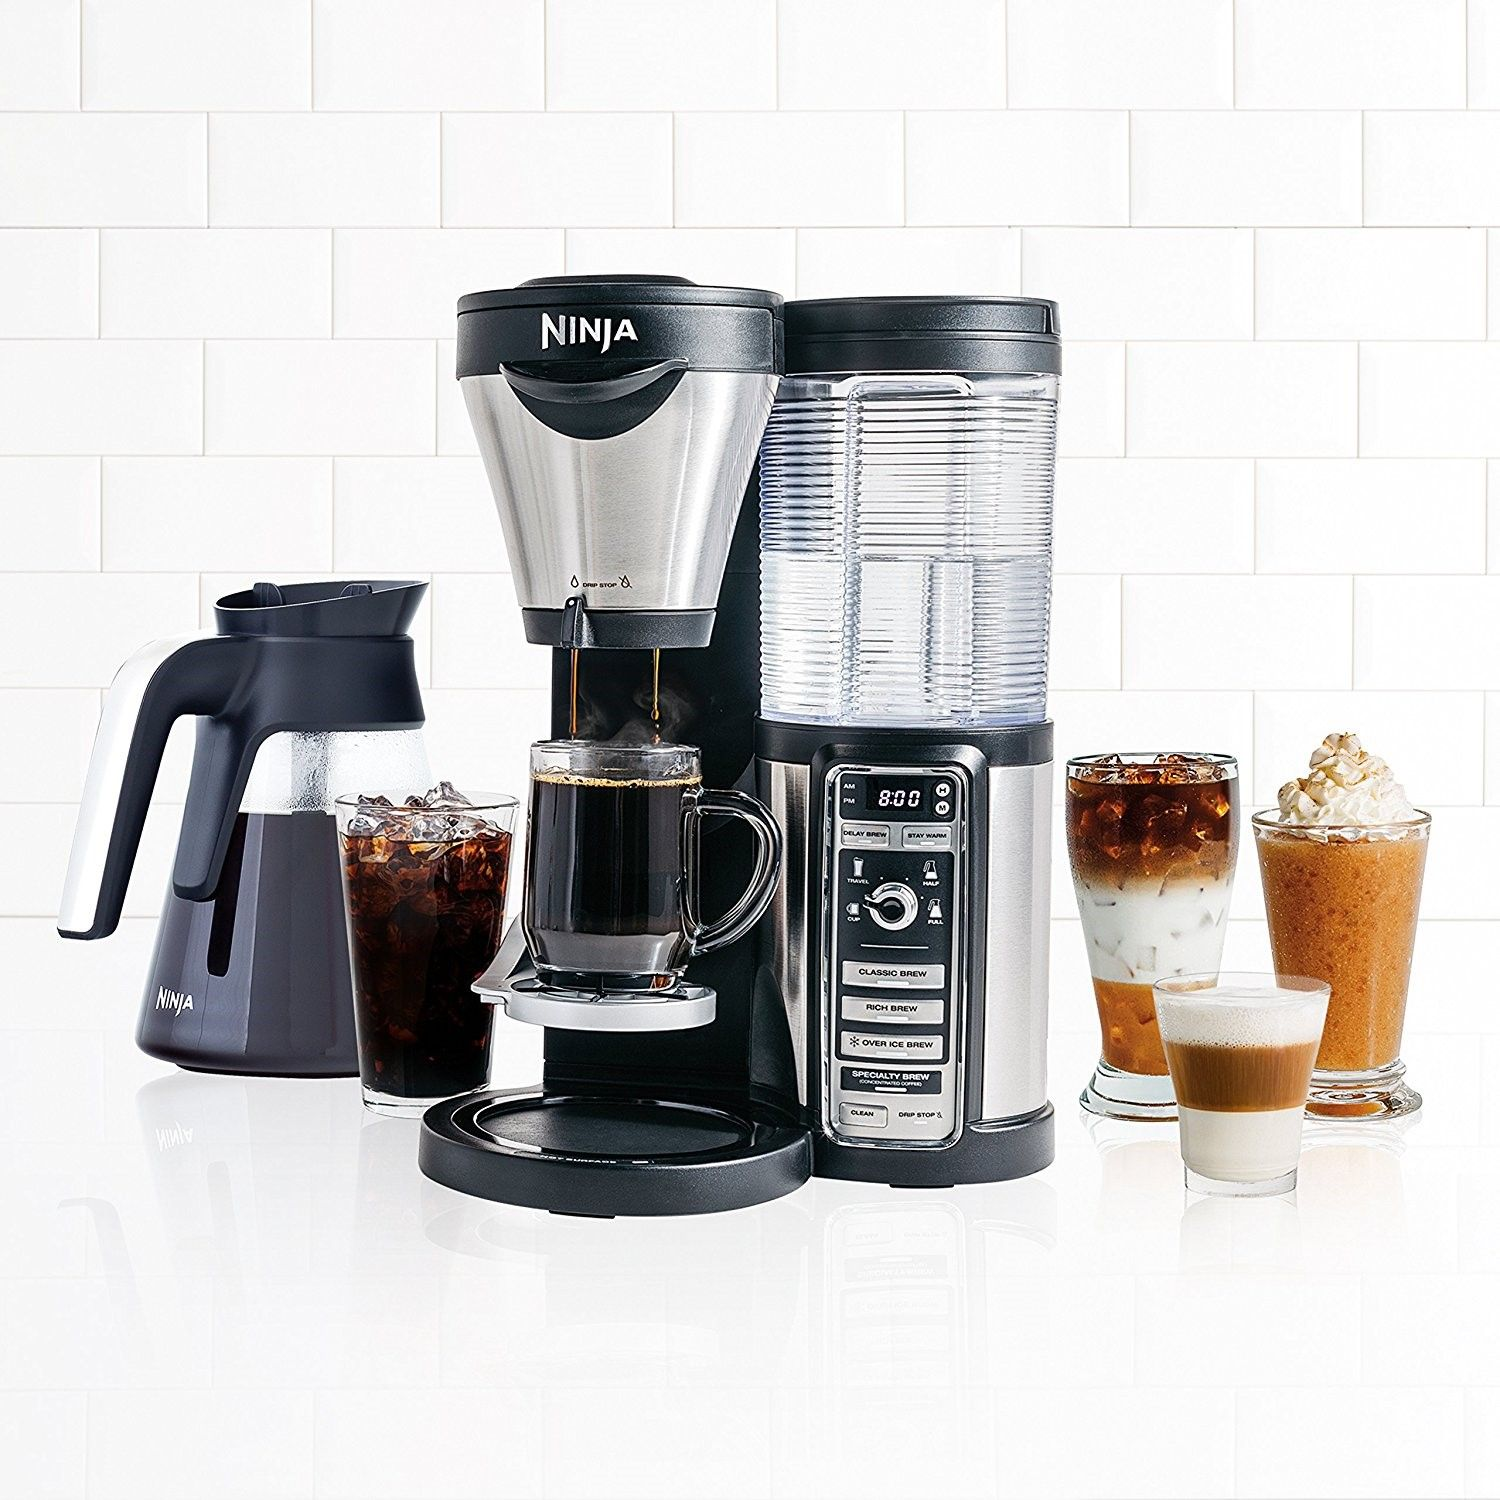 Home Ninja coffee maker, Ninja coffee bar, Ninja coffee